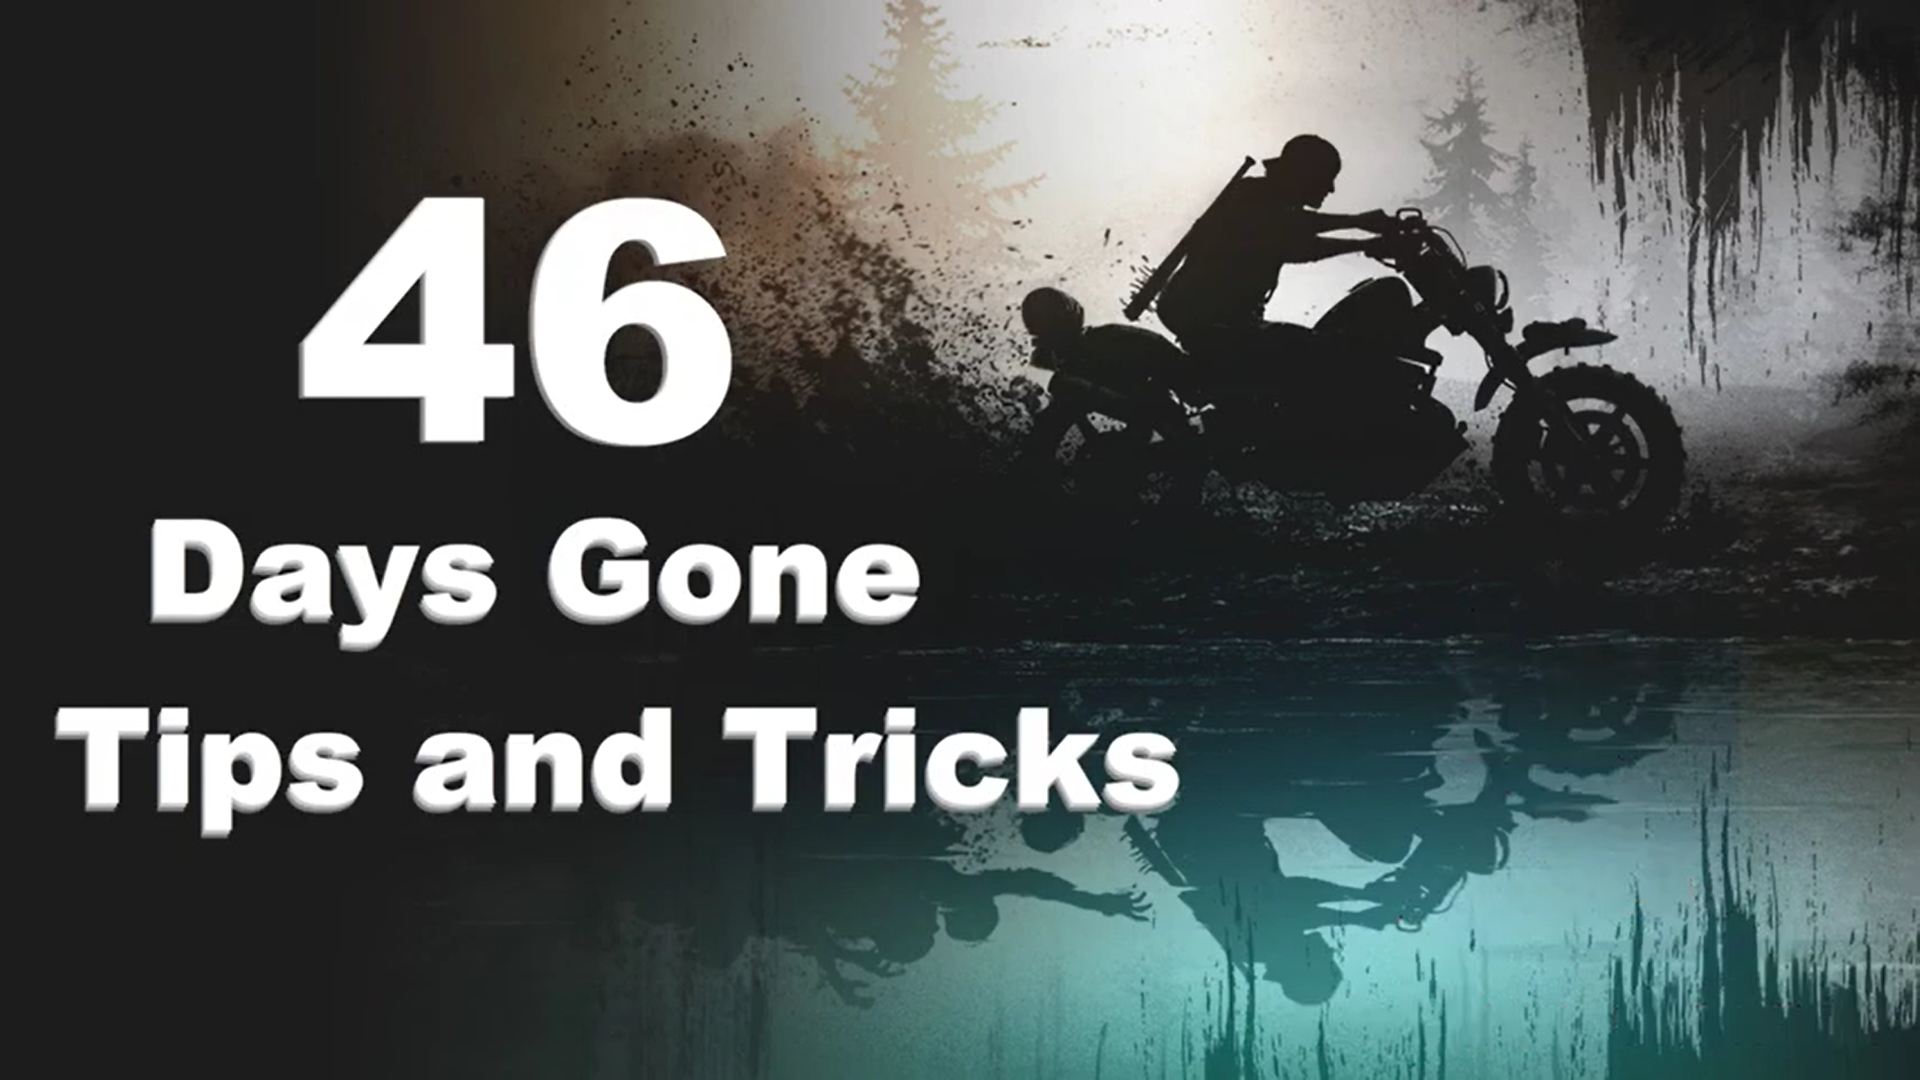 Days Gone tips and tricks